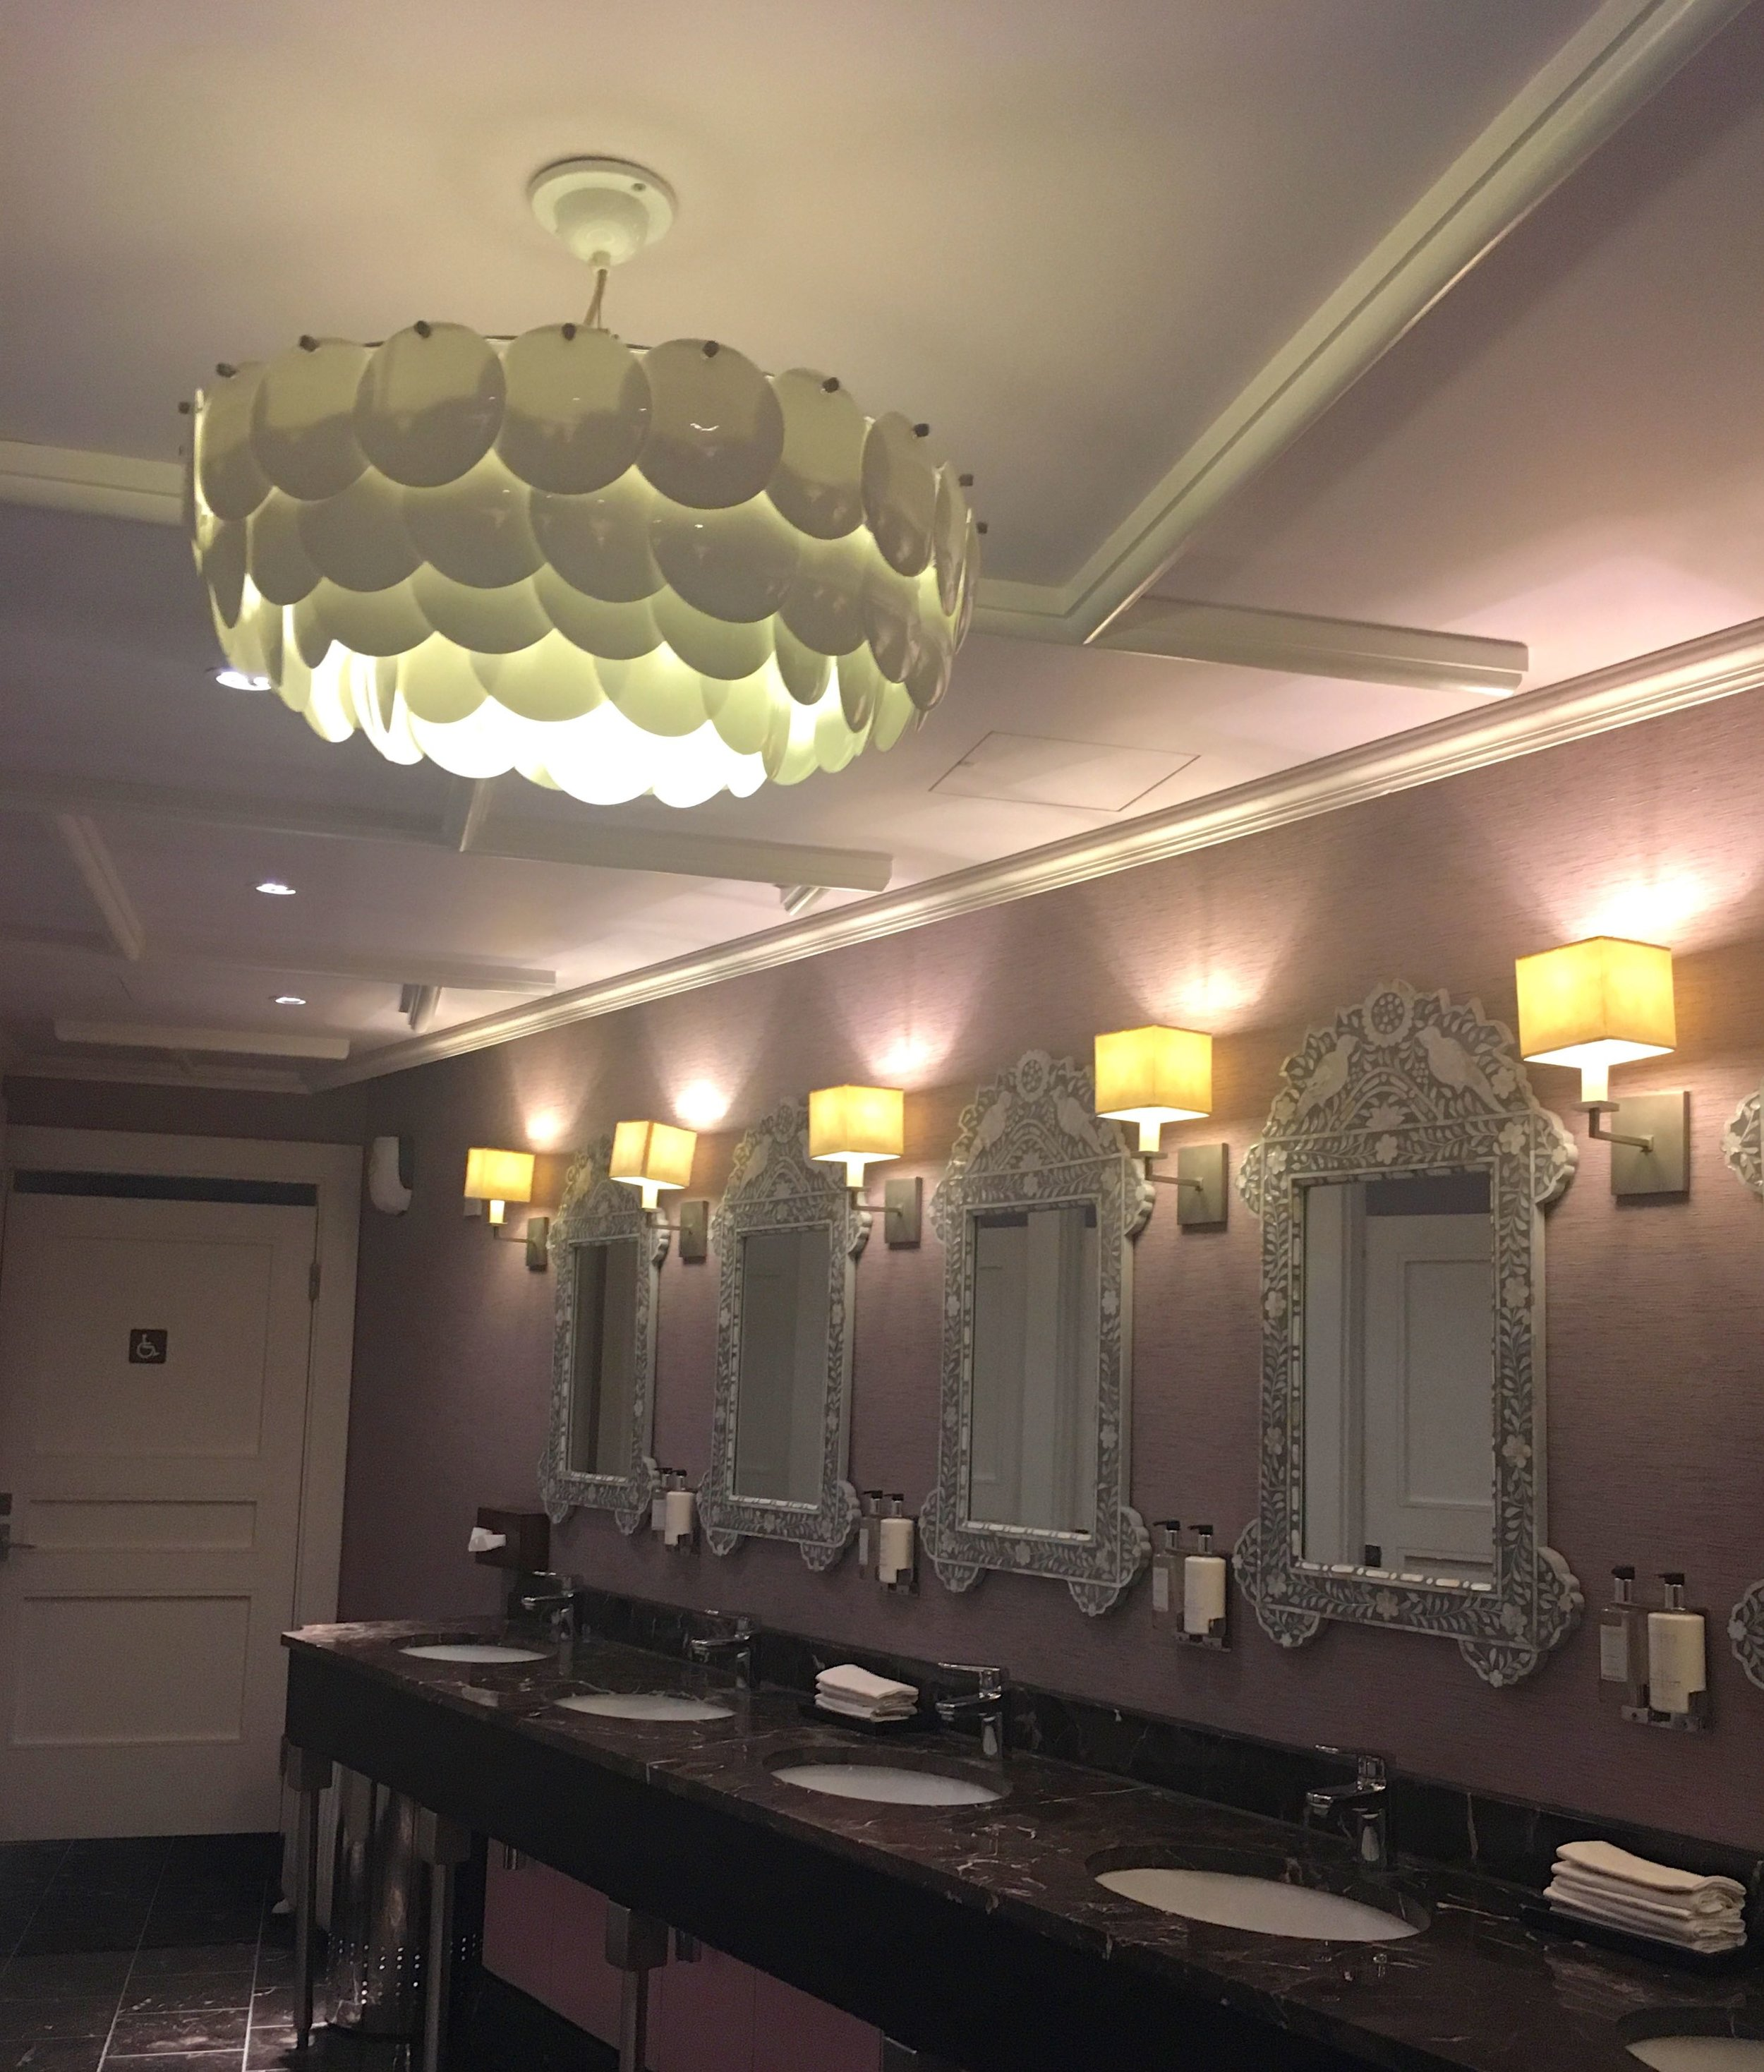 A look into the loos at St Ermin's hotel in London